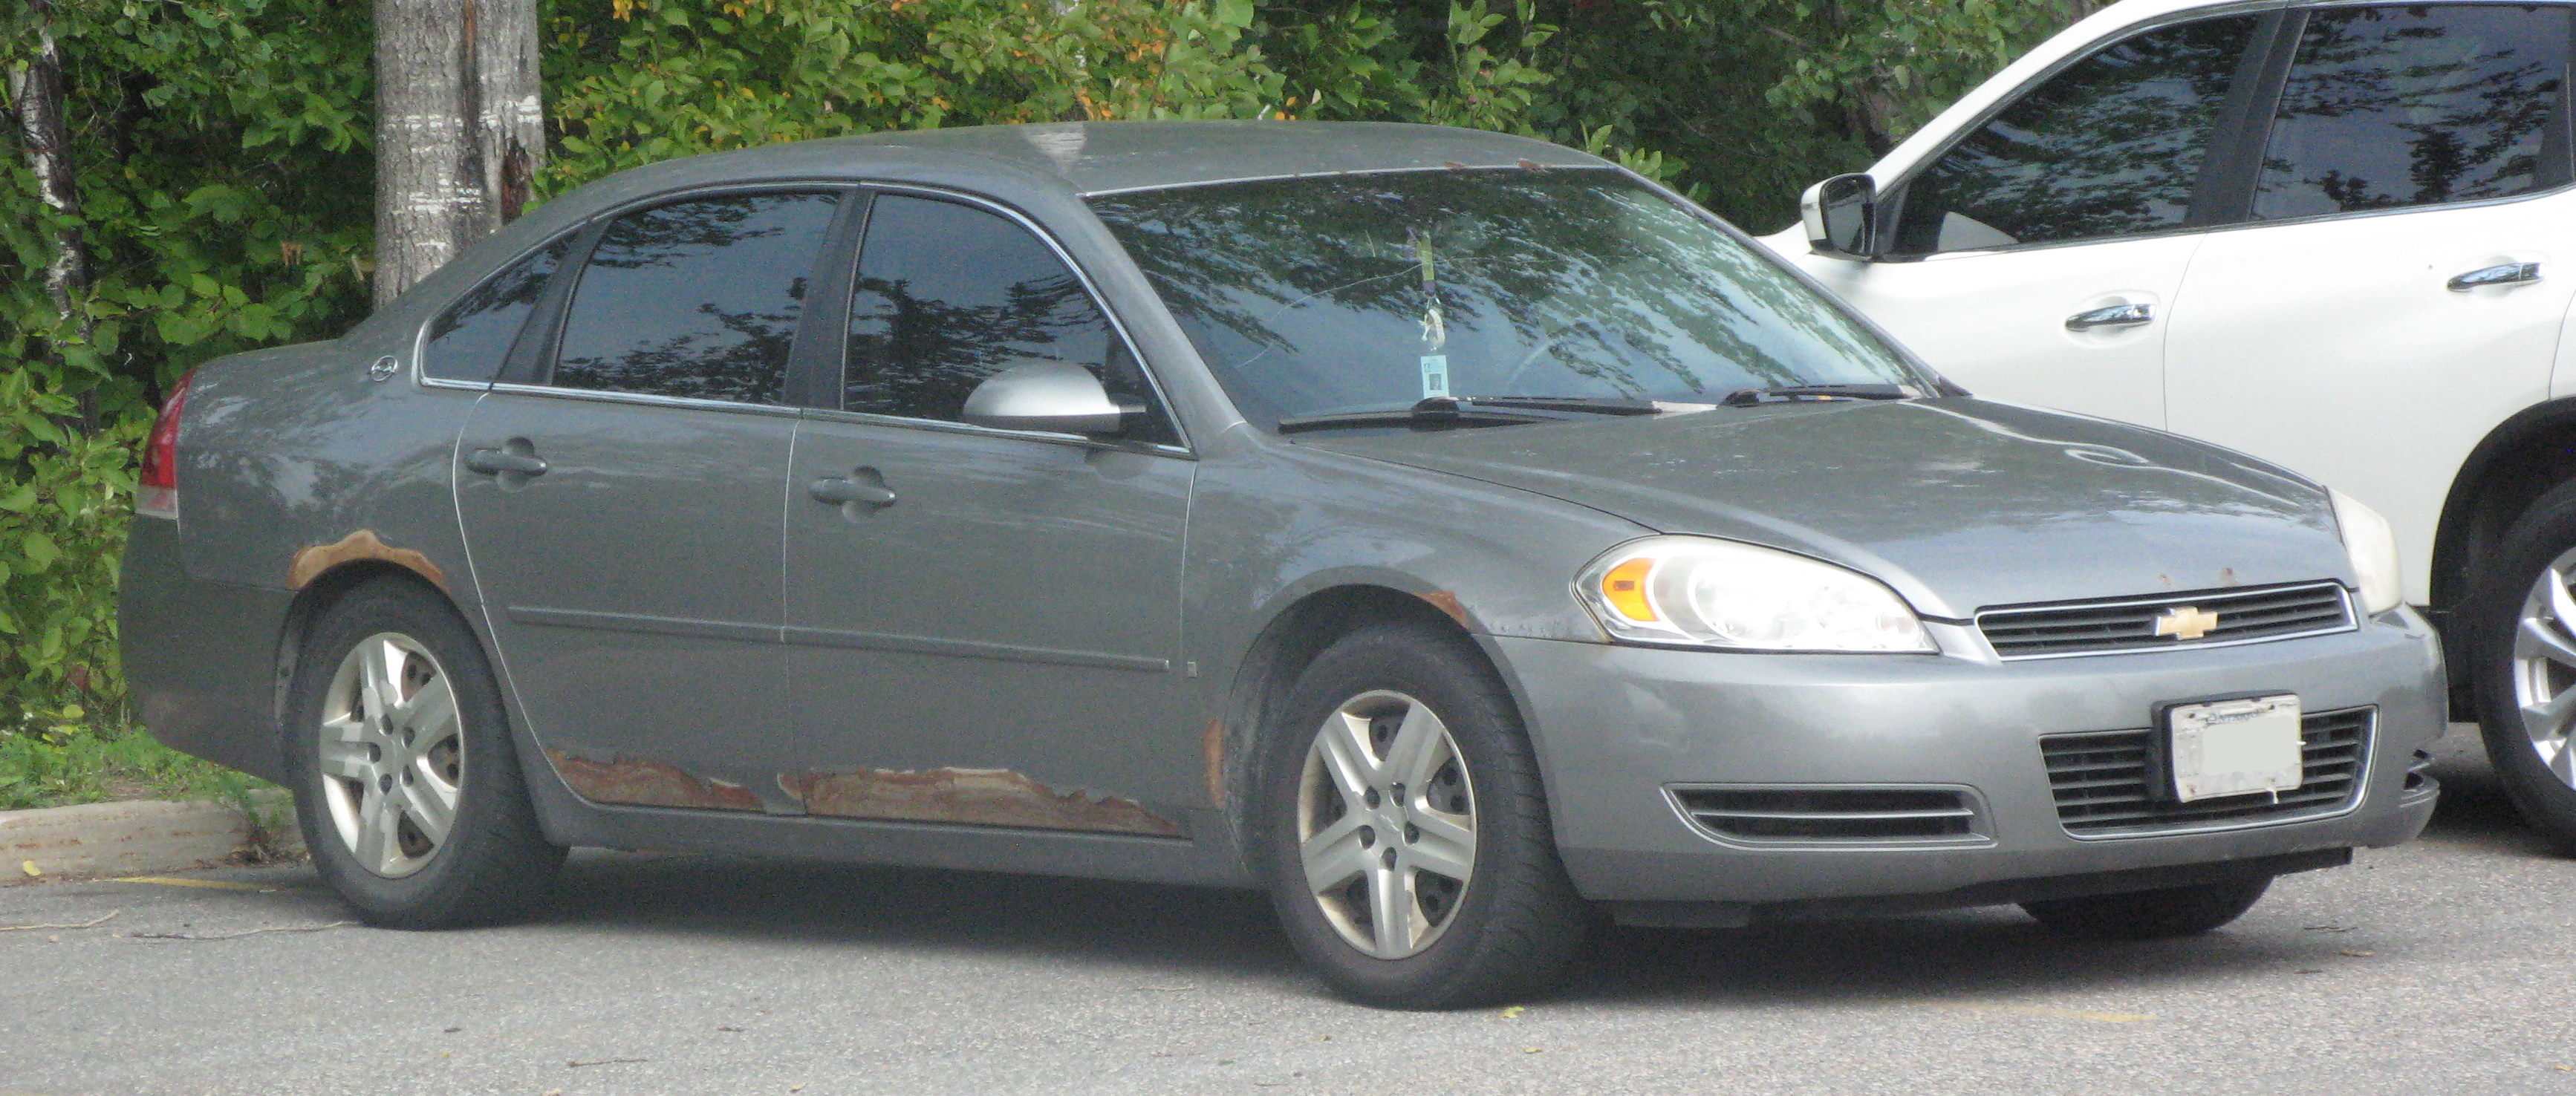 File 2007 Chevrolet Impala Ls Front Right 09 16 2020 Jpg Wikimedia Commons